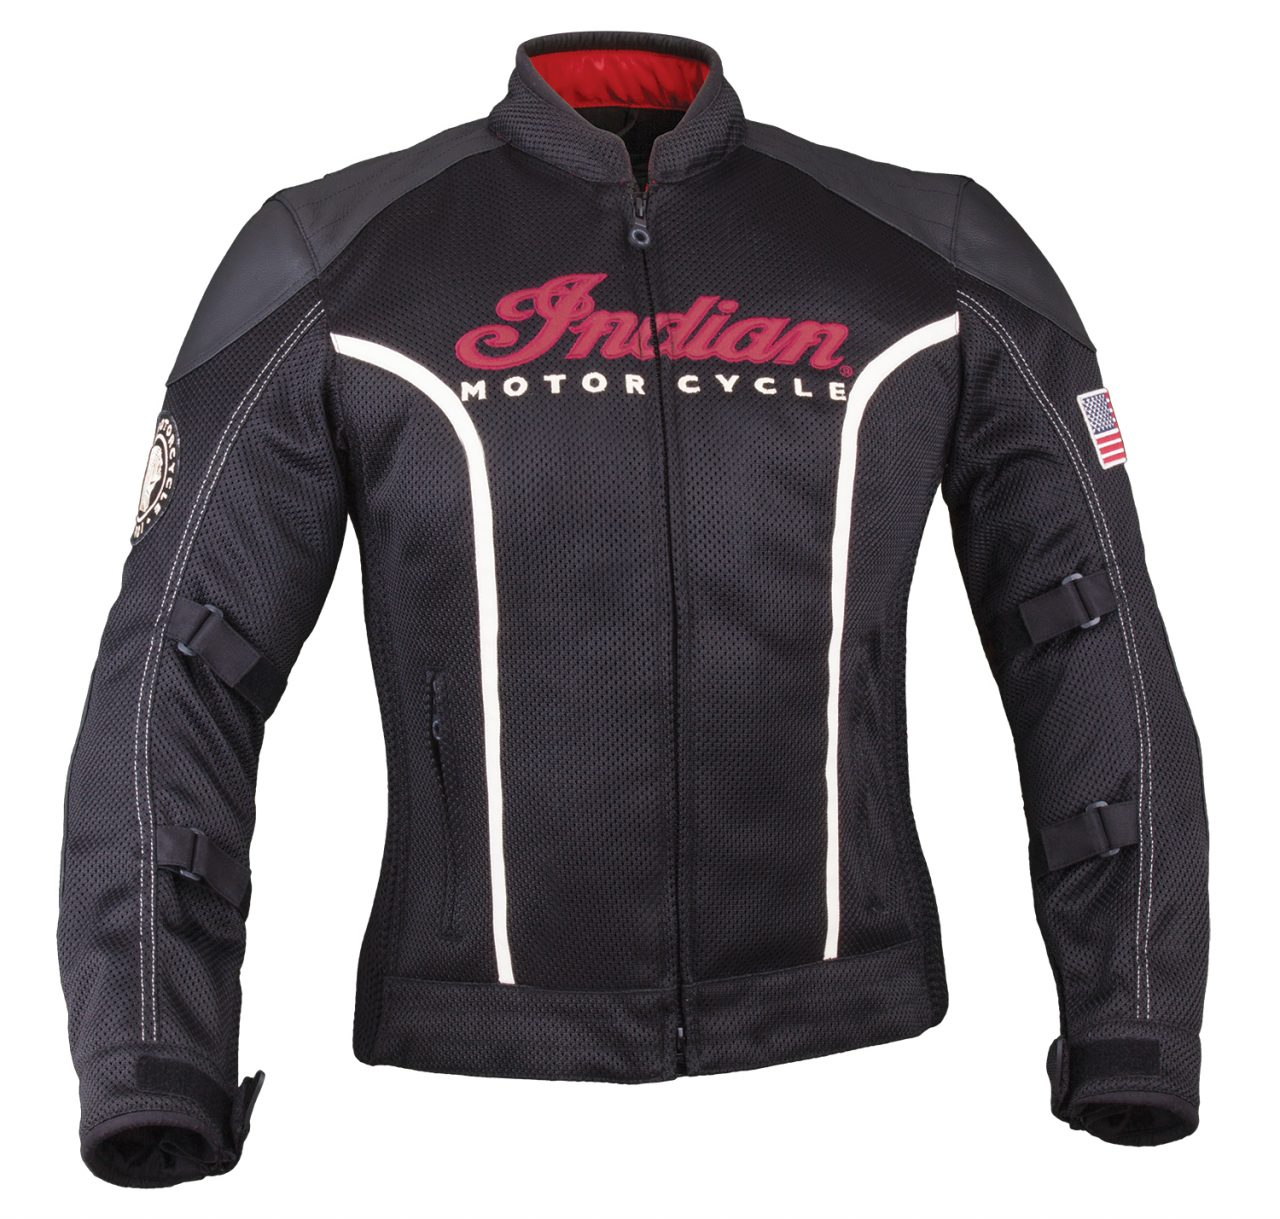 New Gear Mesh Riding Jackets From Indian Motorcycle For